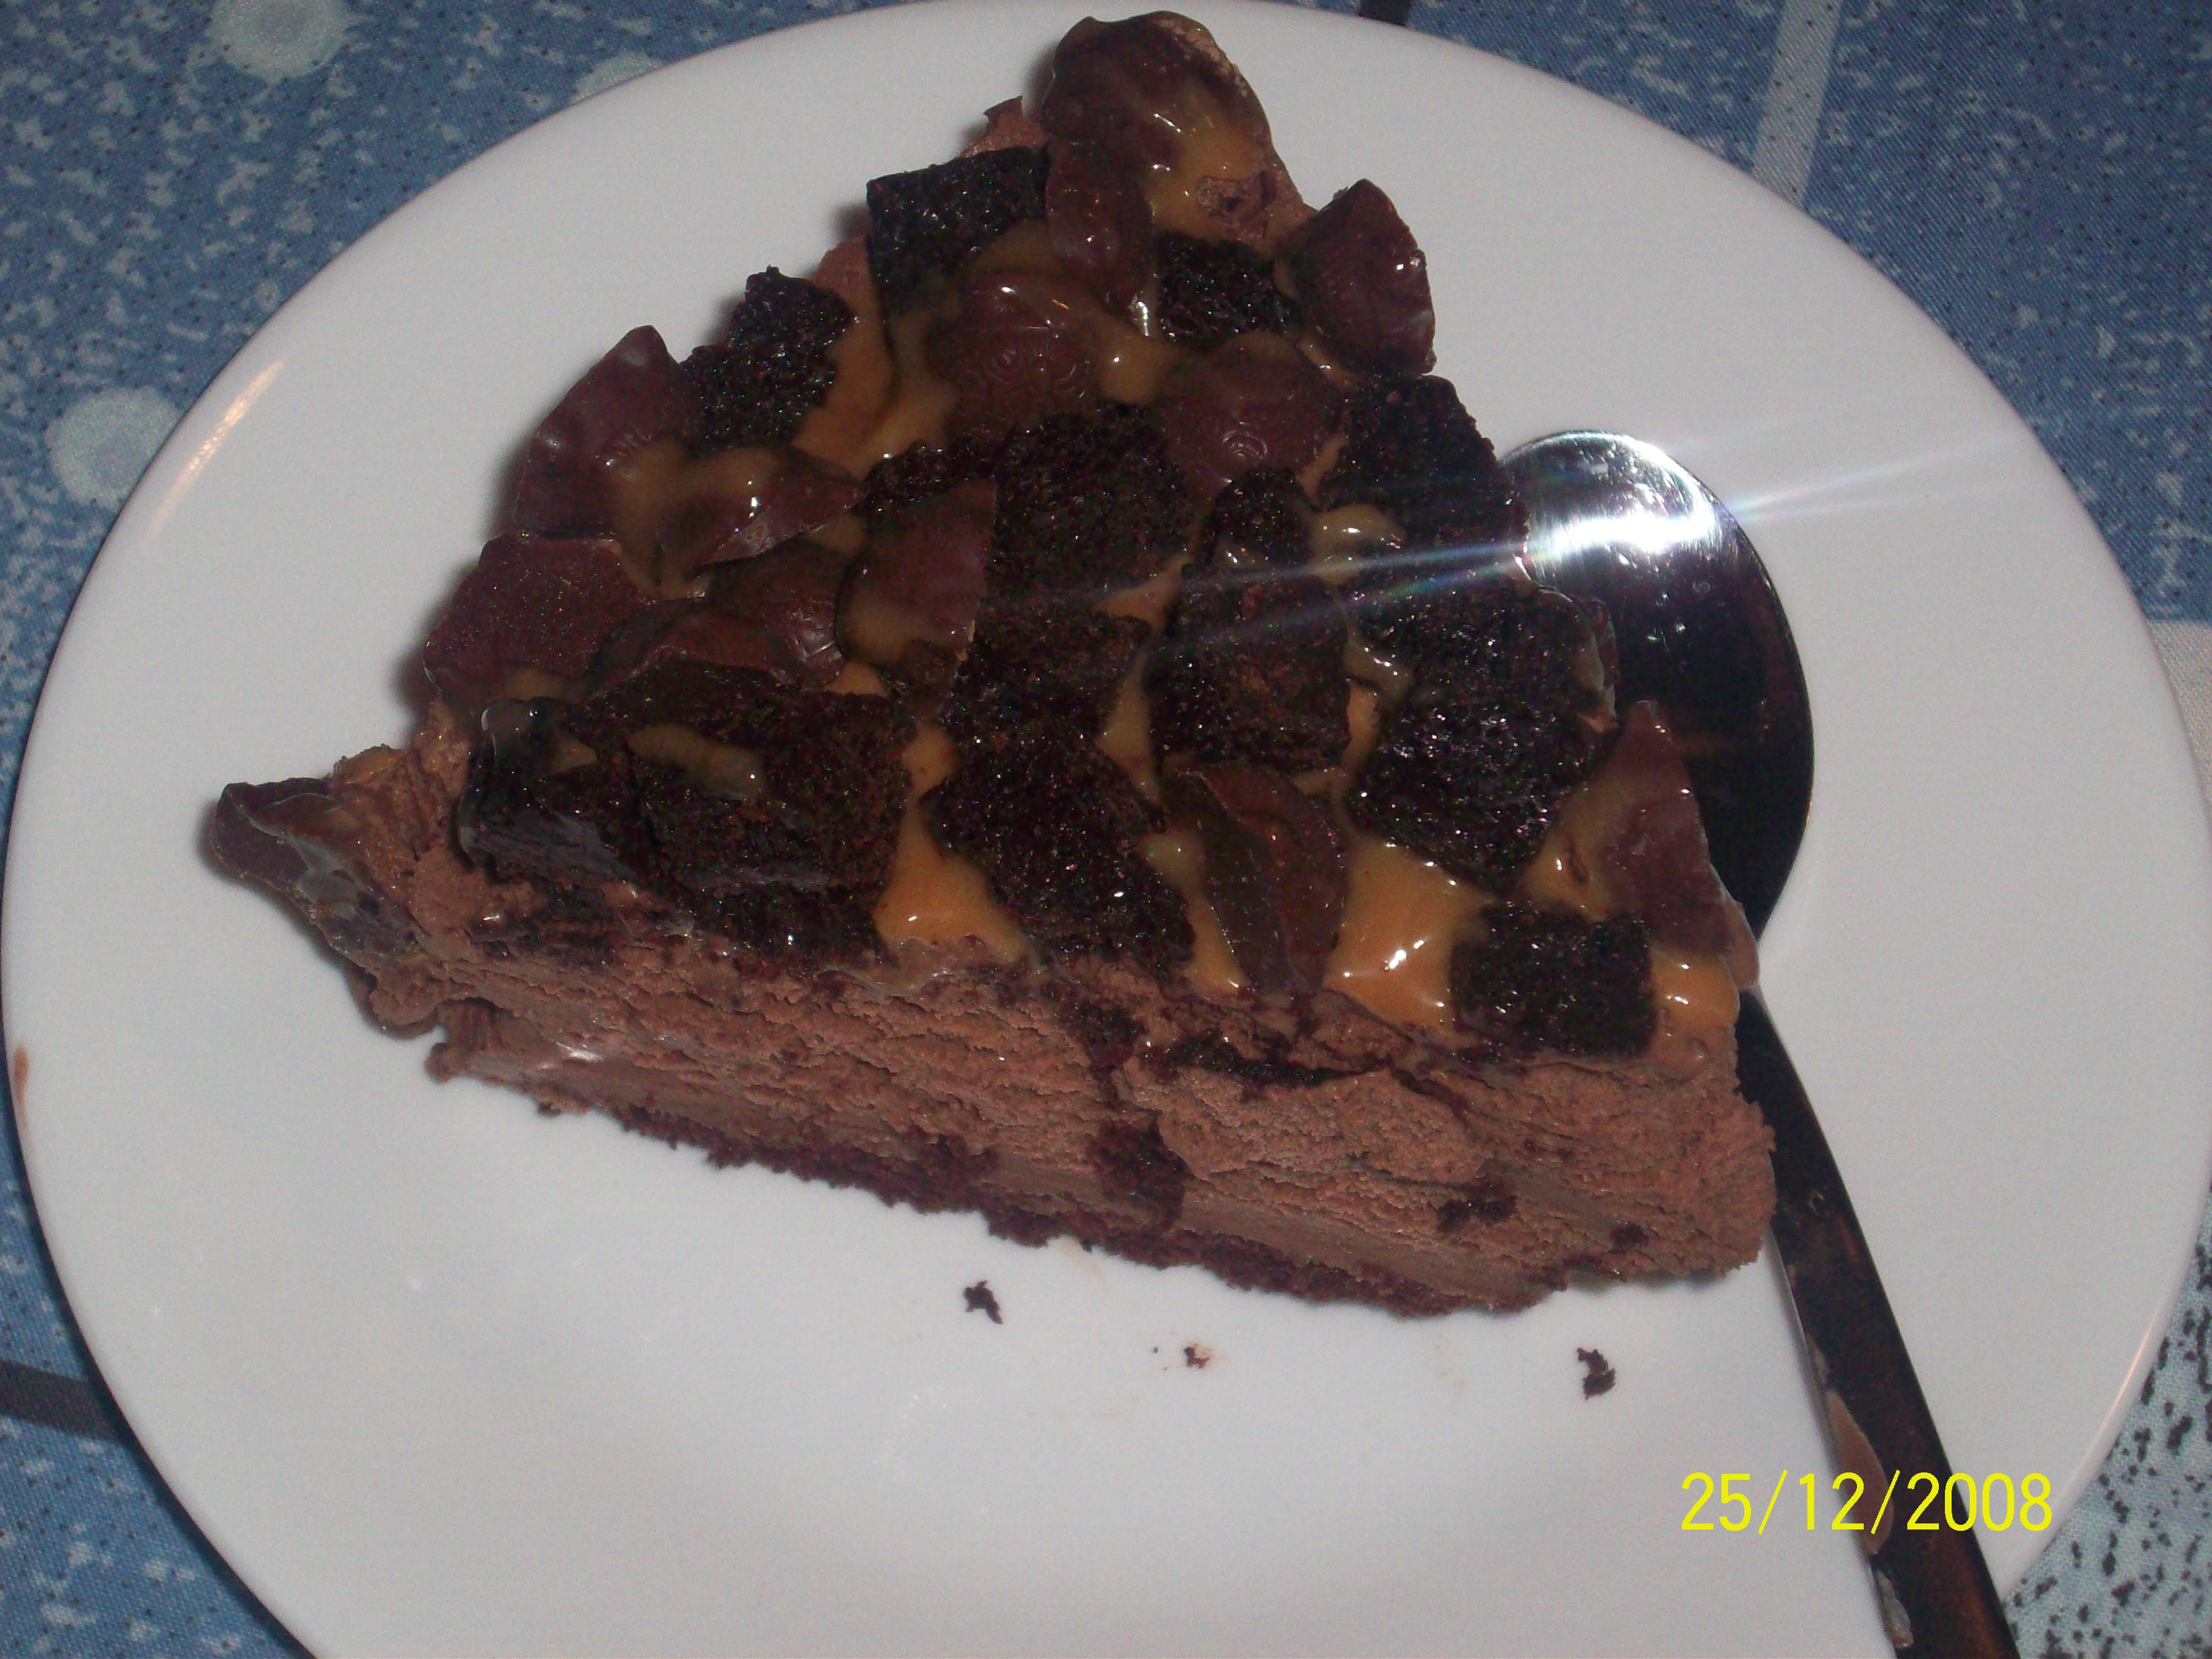 https://foodloader.net/cutie_2008-12-25_Choco_Caramel_Ice_Cream_Cake.jpg